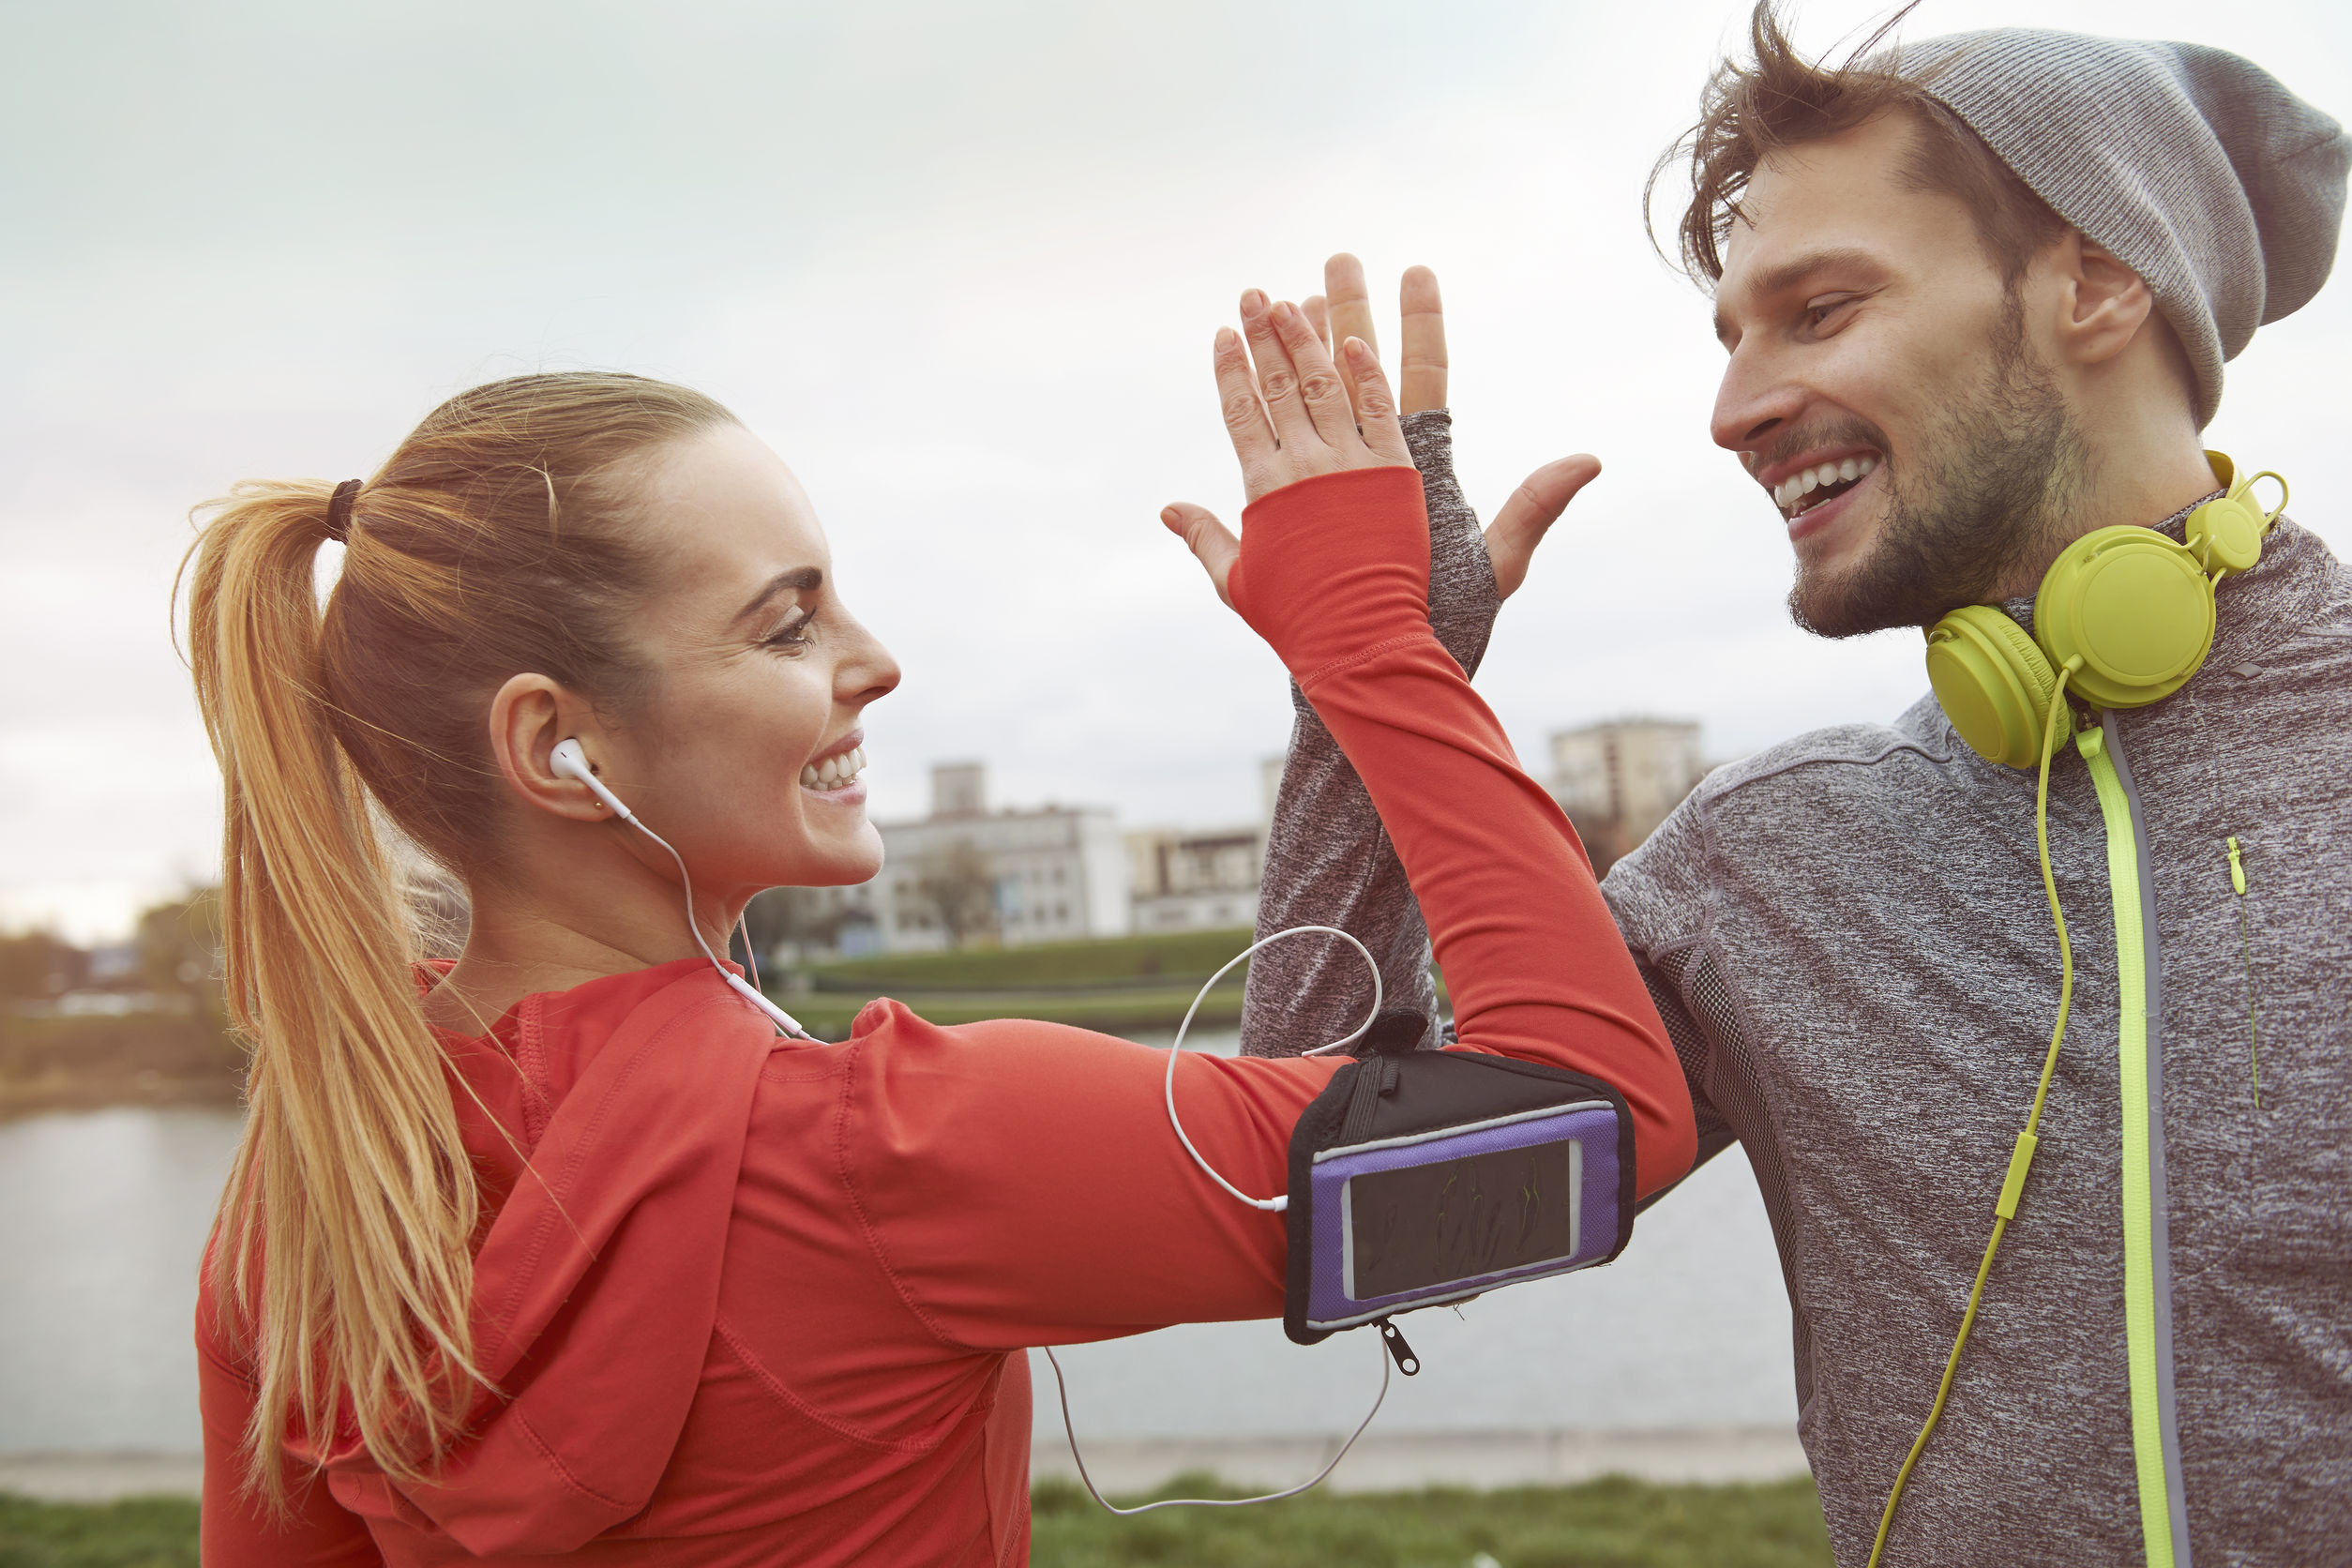 7 Ways to Boost Your Workout With Excellent Music